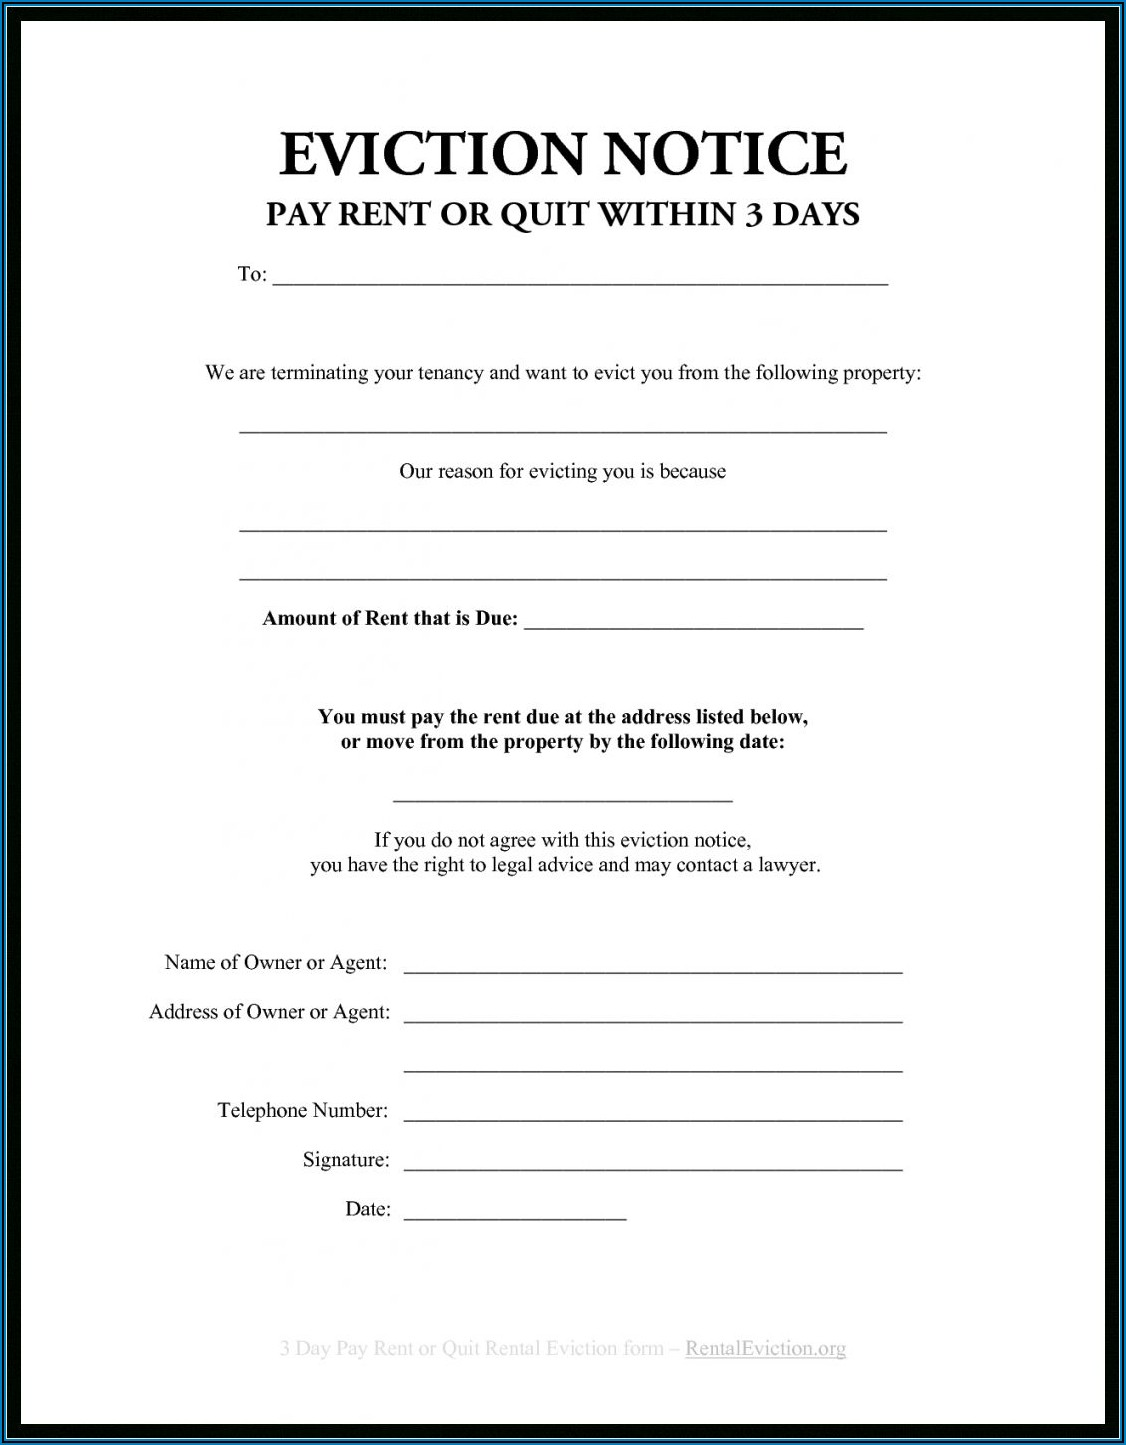 Eviction Notice Form In Spanish